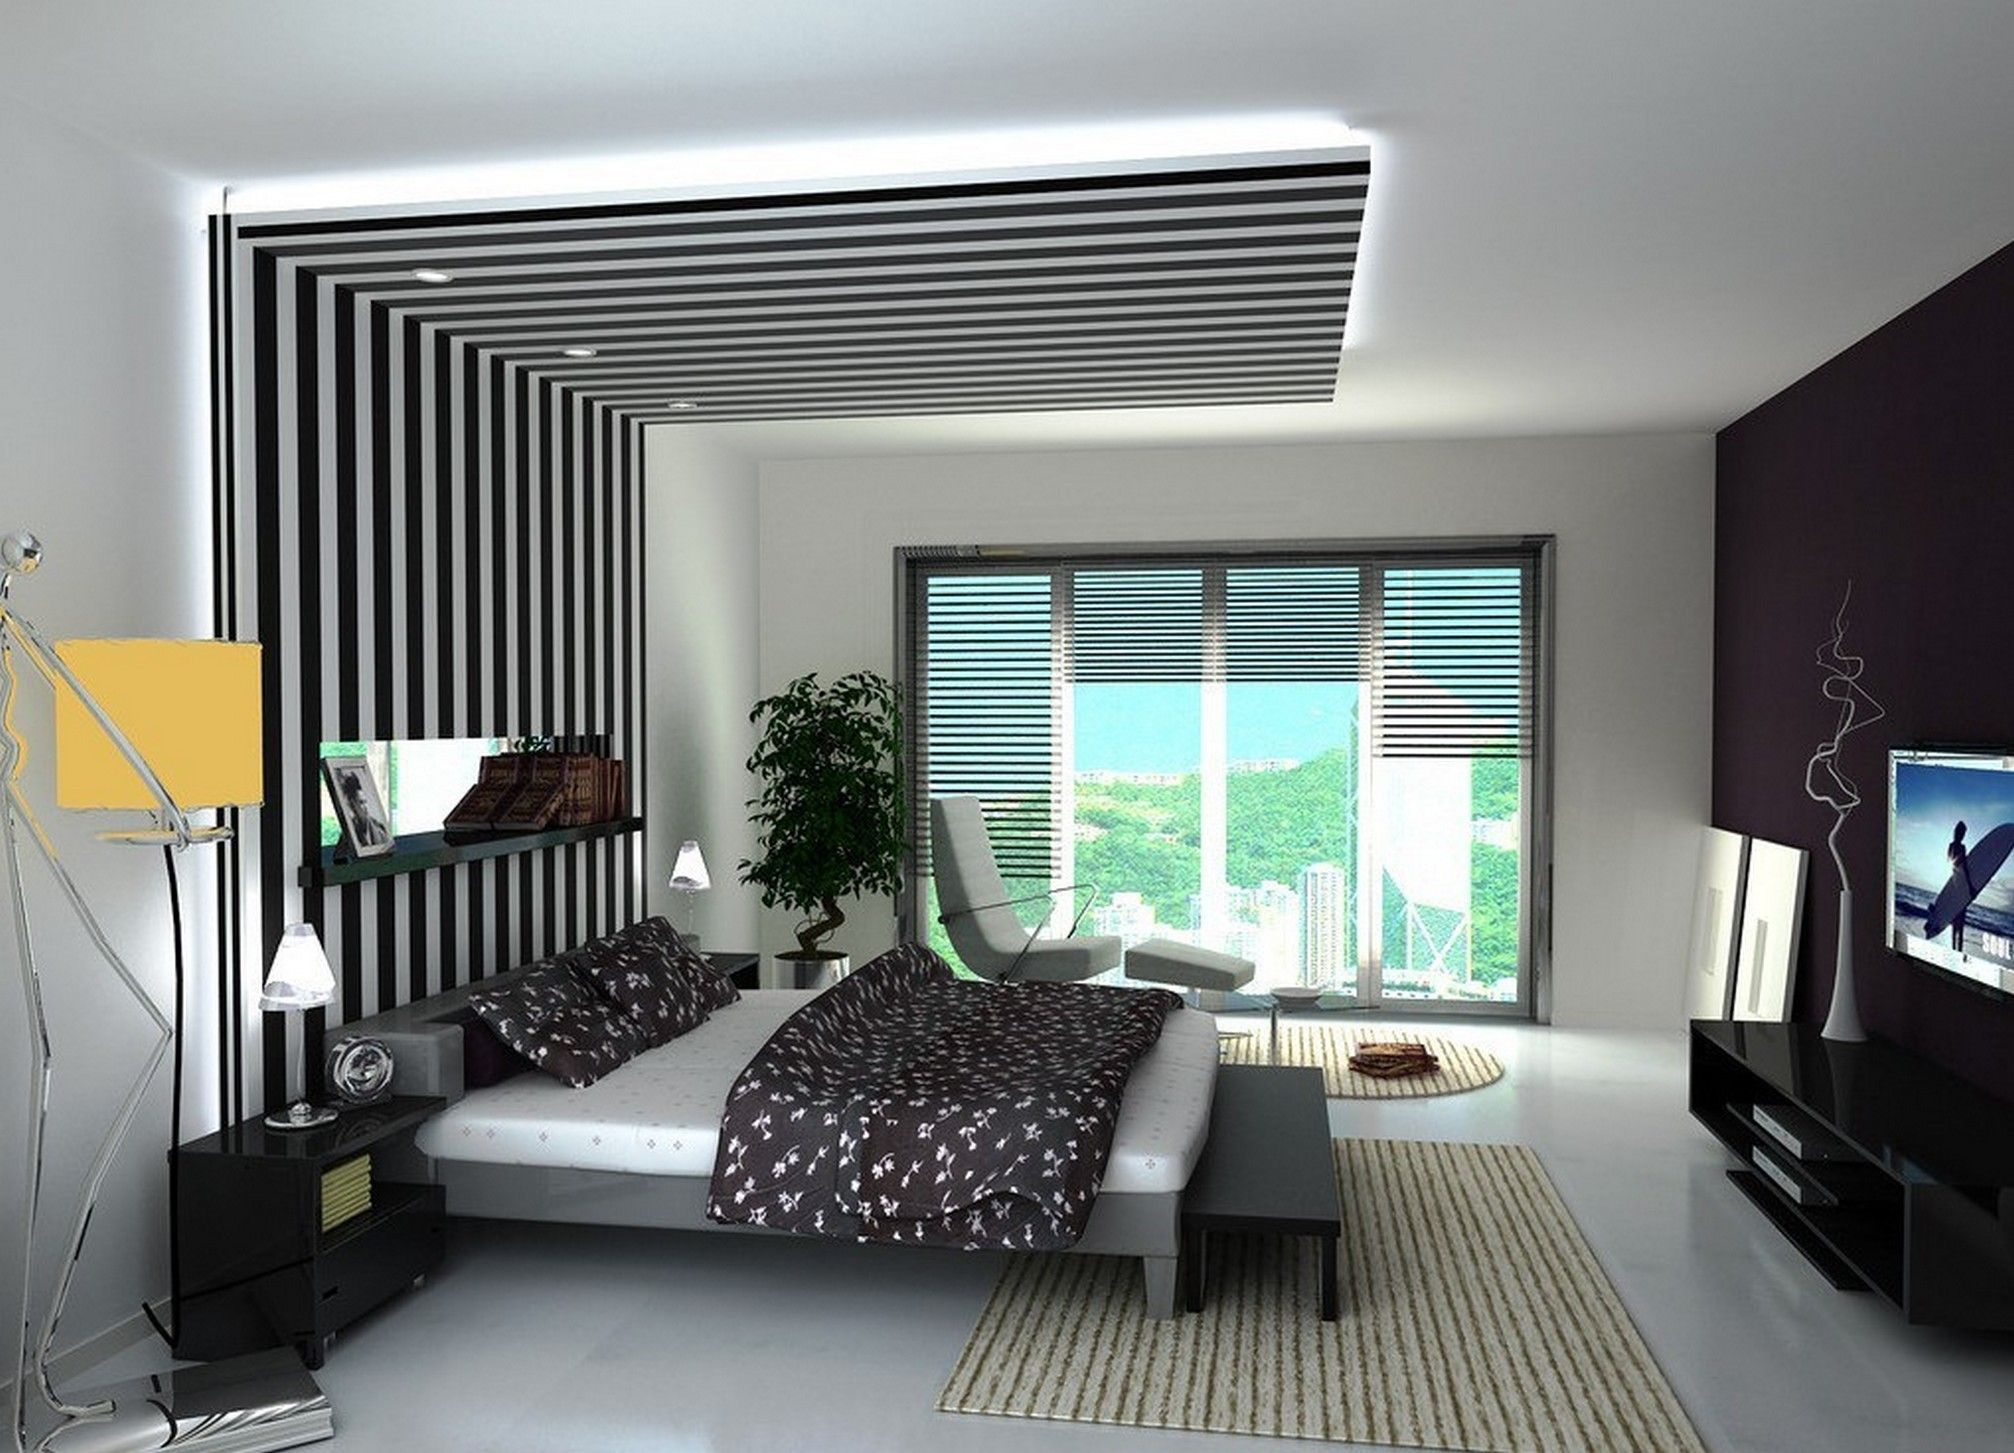 Decorating painting gypsum board false ceiling designs for modern decorating painting gypsum board false ceiling designs for modern bedroom ideas with different wall modern amipublicfo Image collections